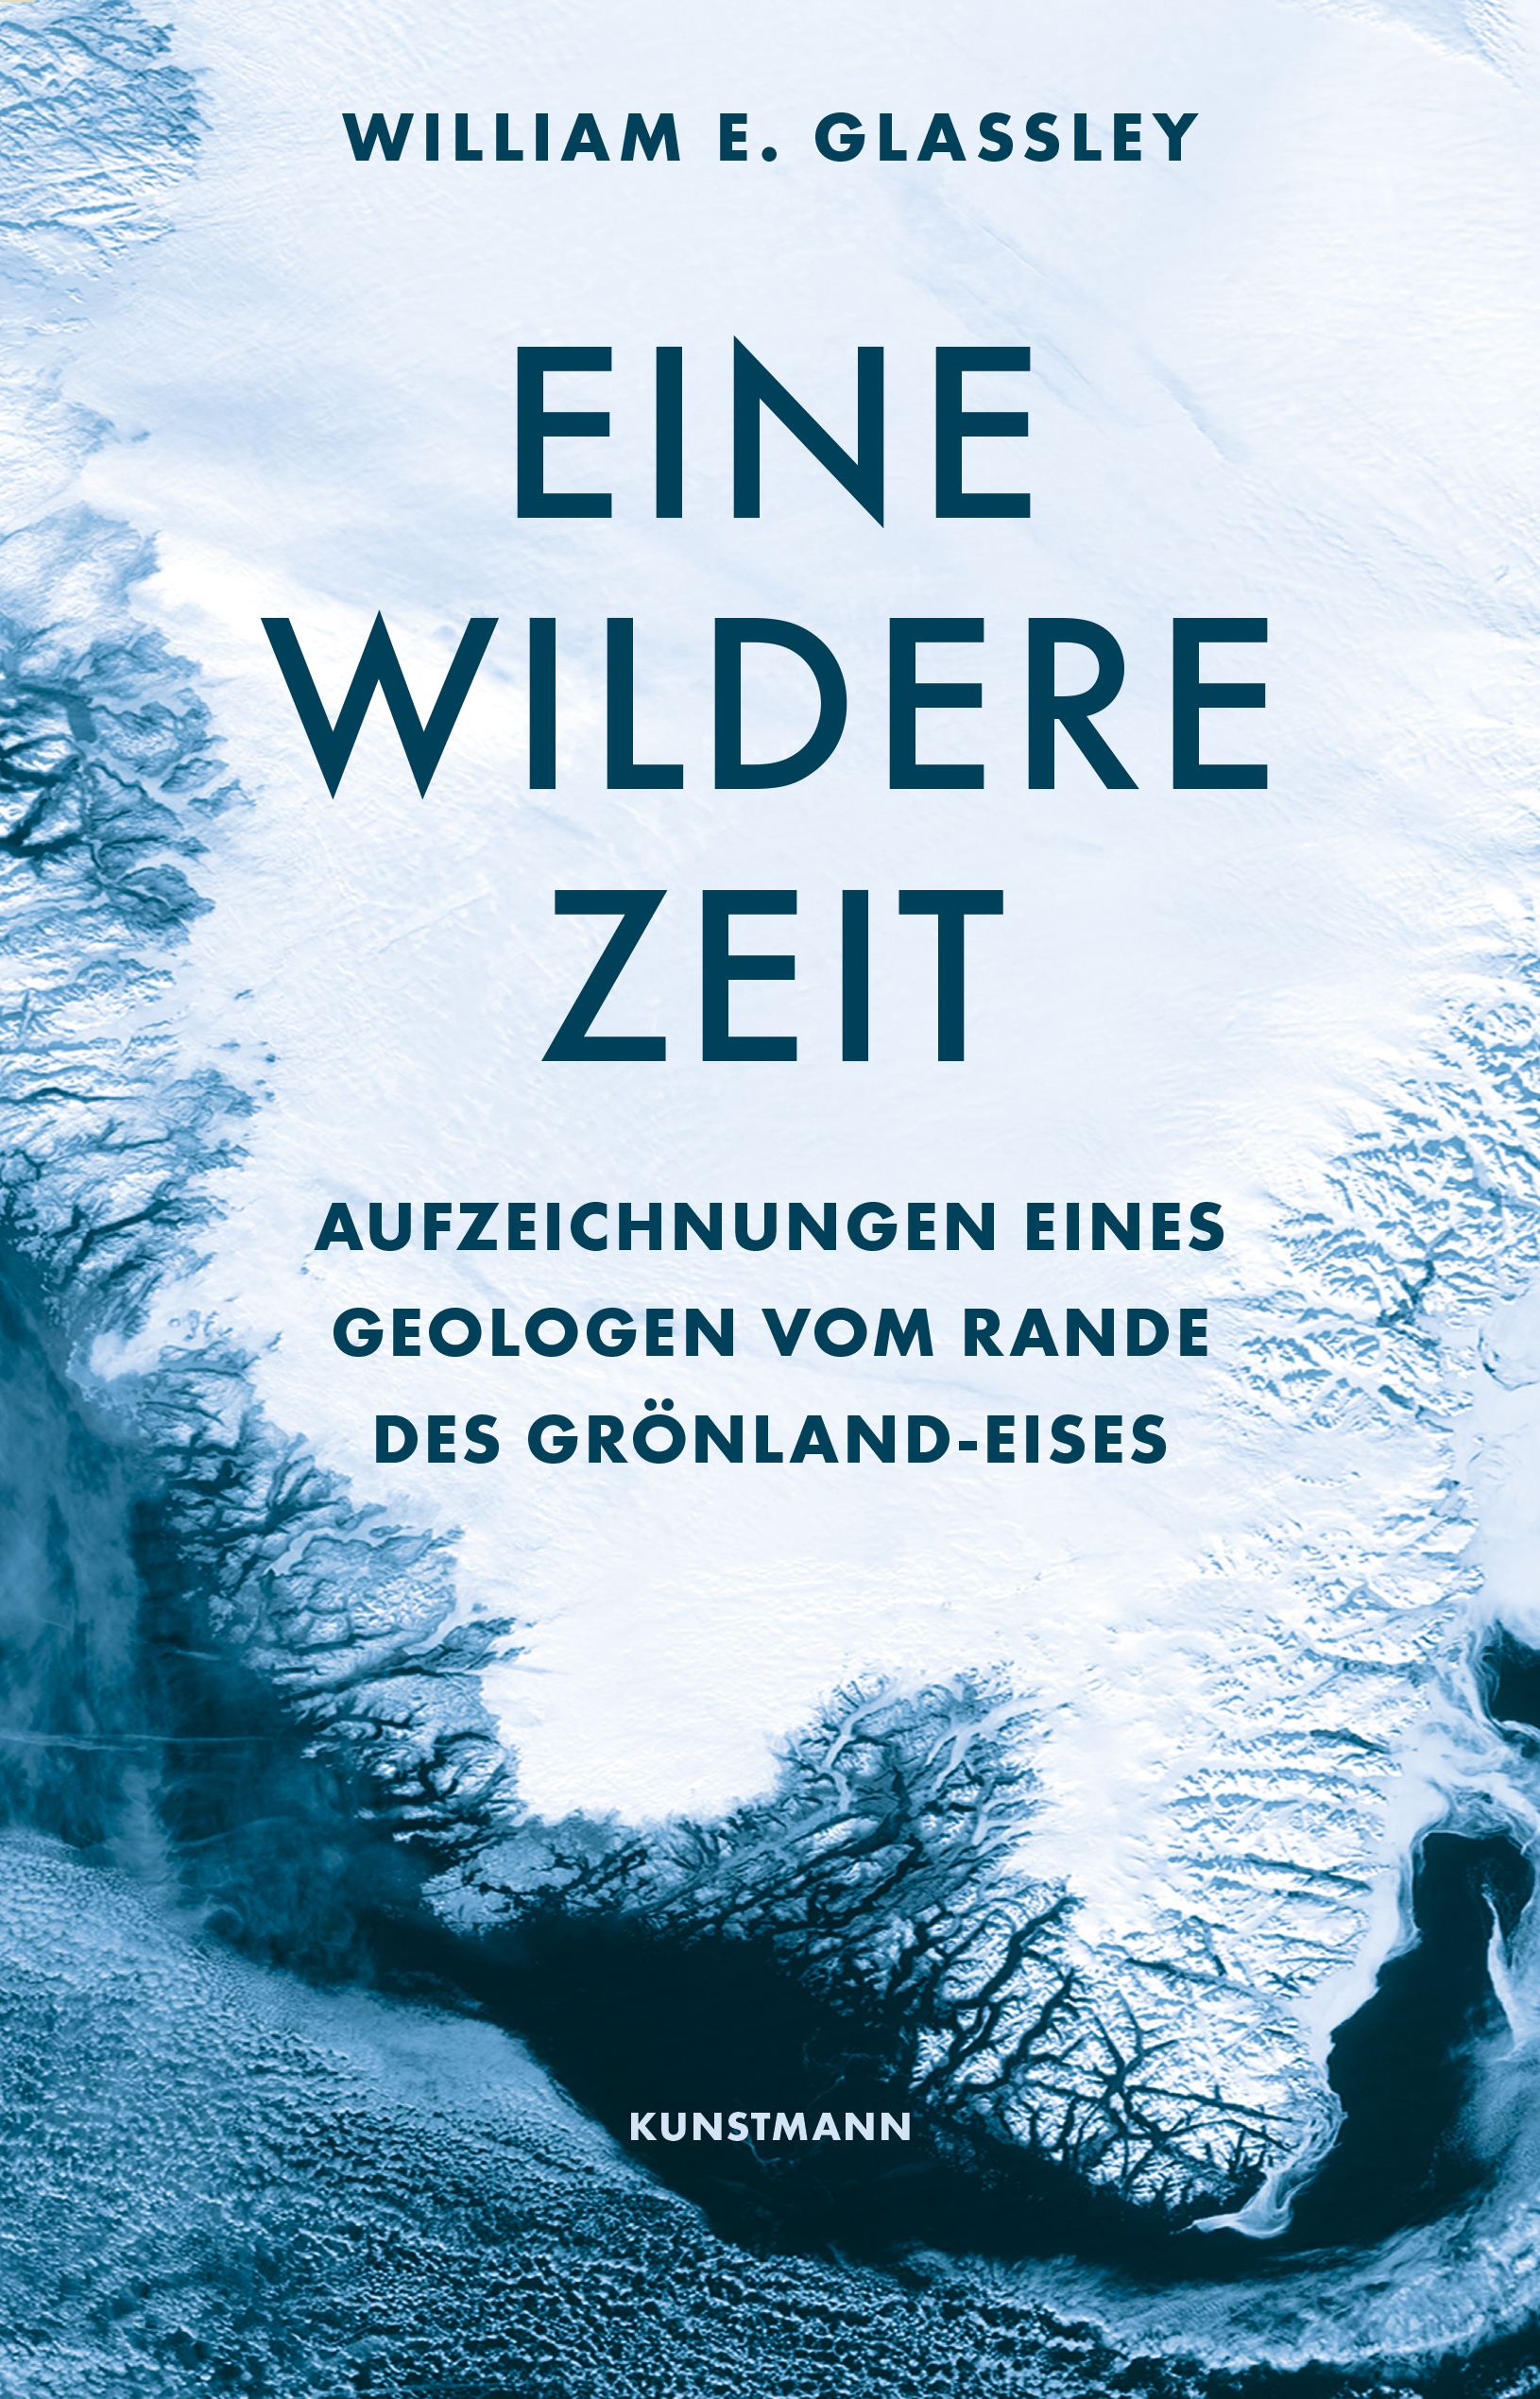 William E. Glassley, Eine wildere Zeit